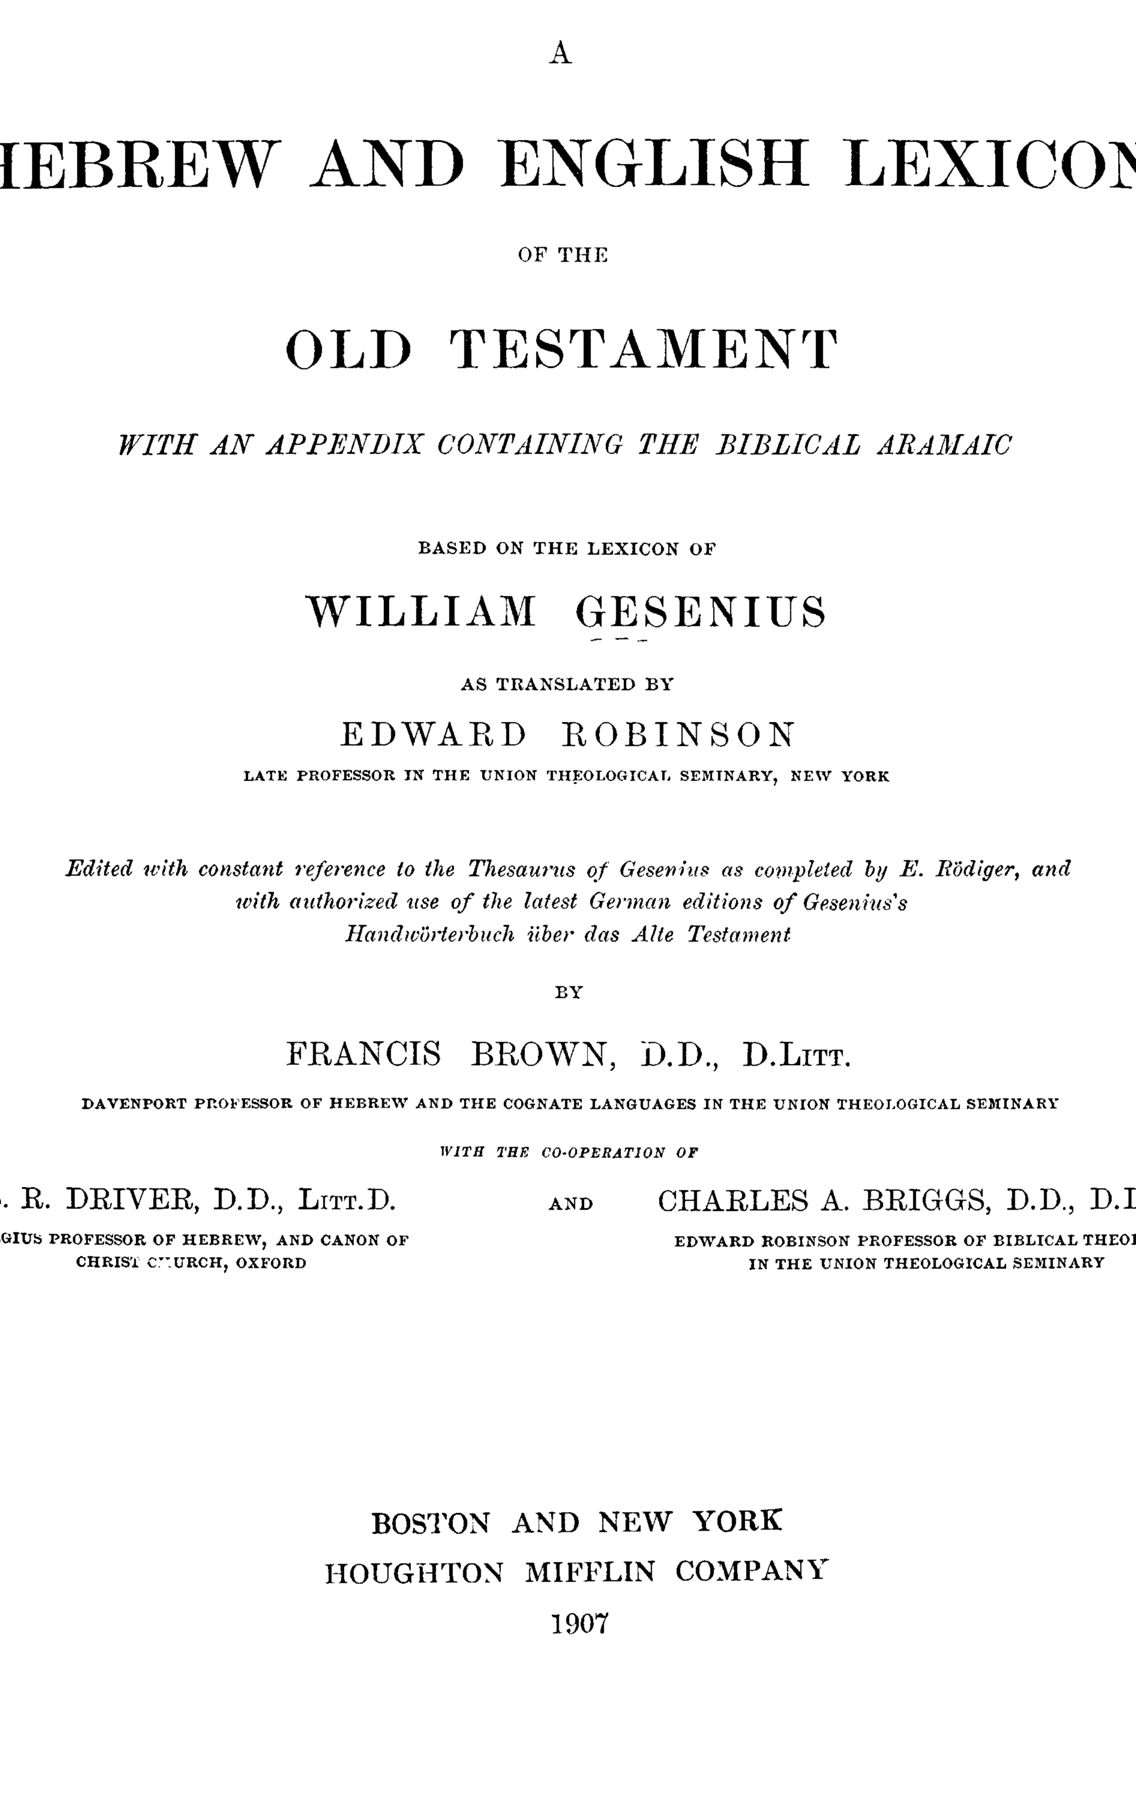 BDB - title - Page: title